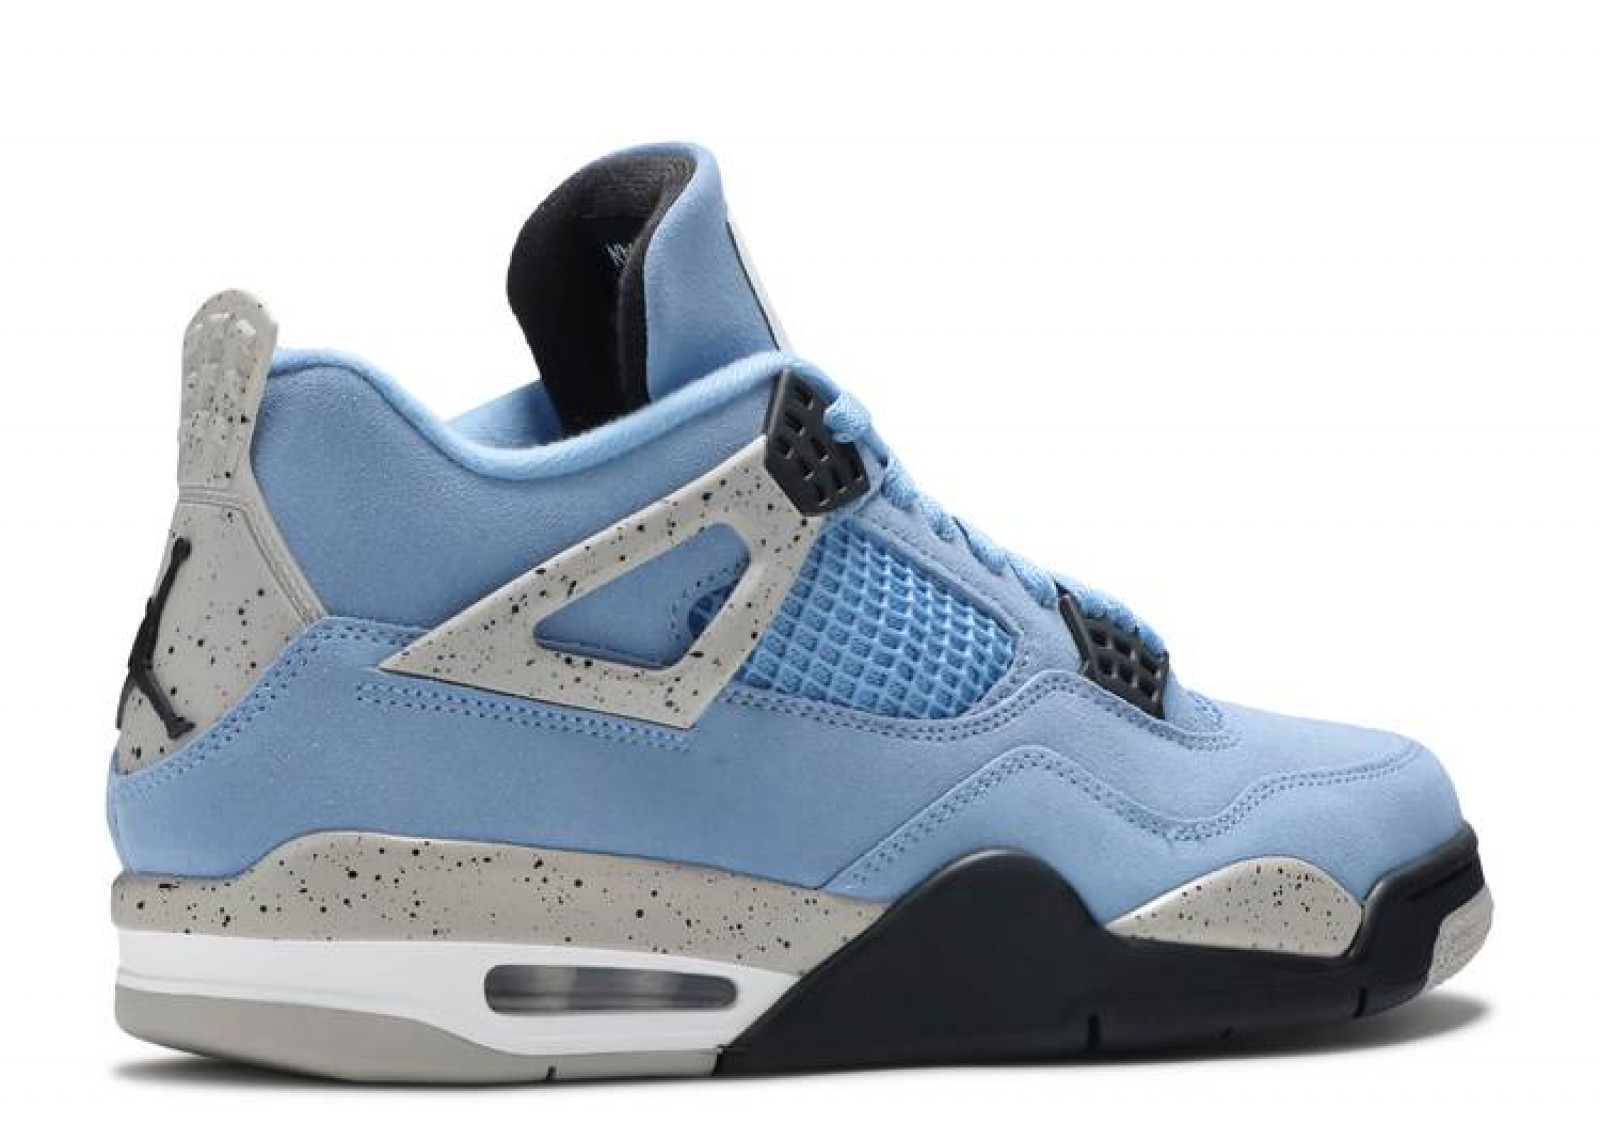 AIR JORDAN 4 RETRO UNIVERSITY BLUE image 3